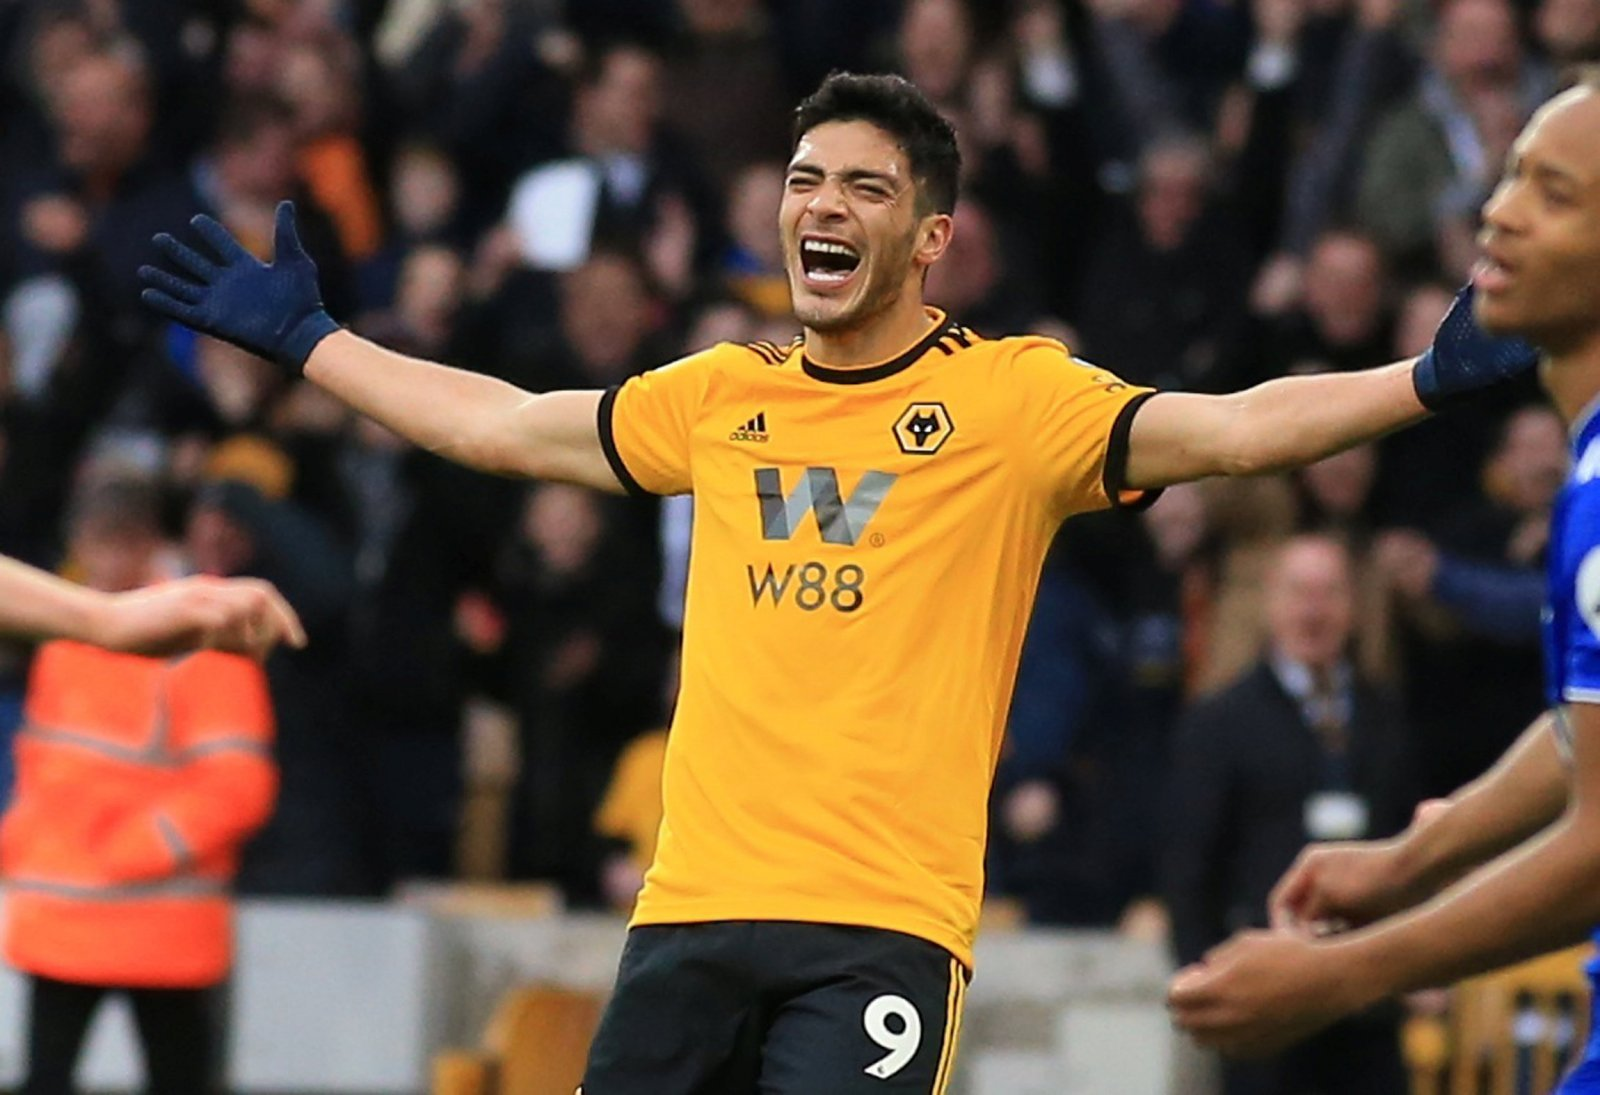 Wolves need to sign Raul Jimenez permanently from Benfica right away